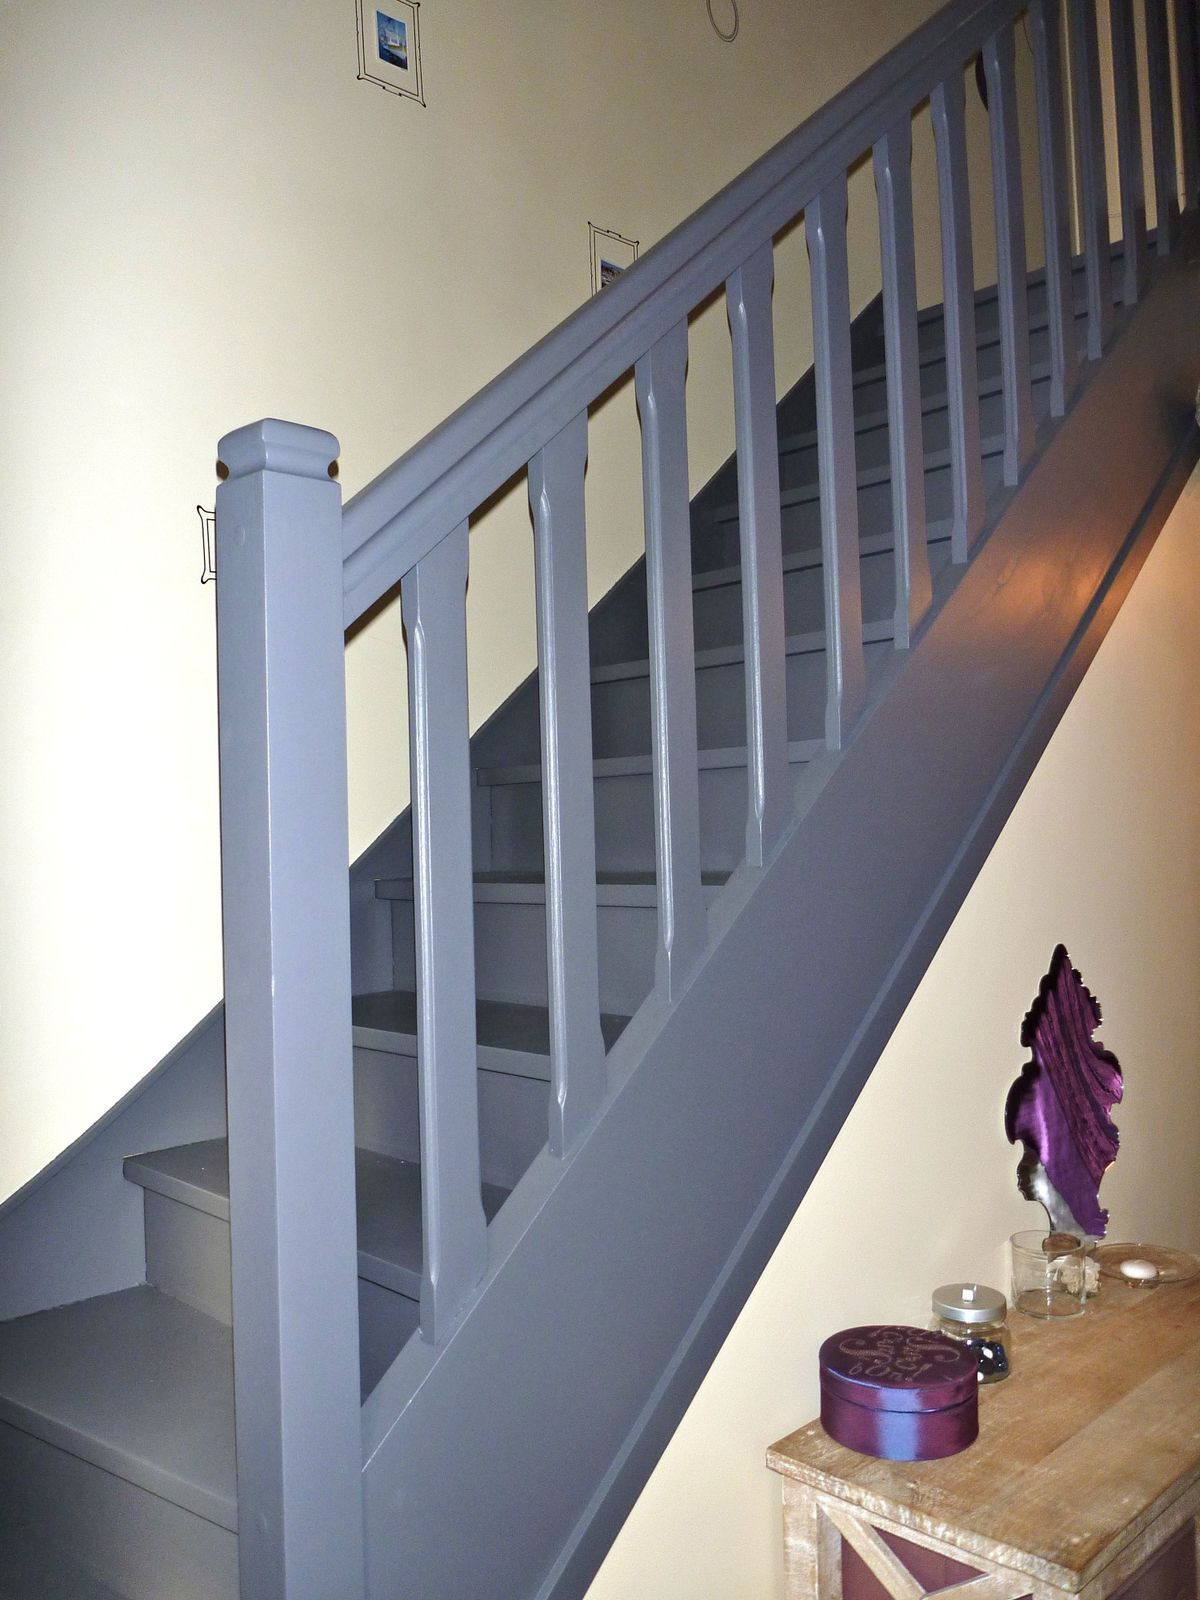 Album album photo relooking pieces la d co by ll for Peindre un escalier en gris